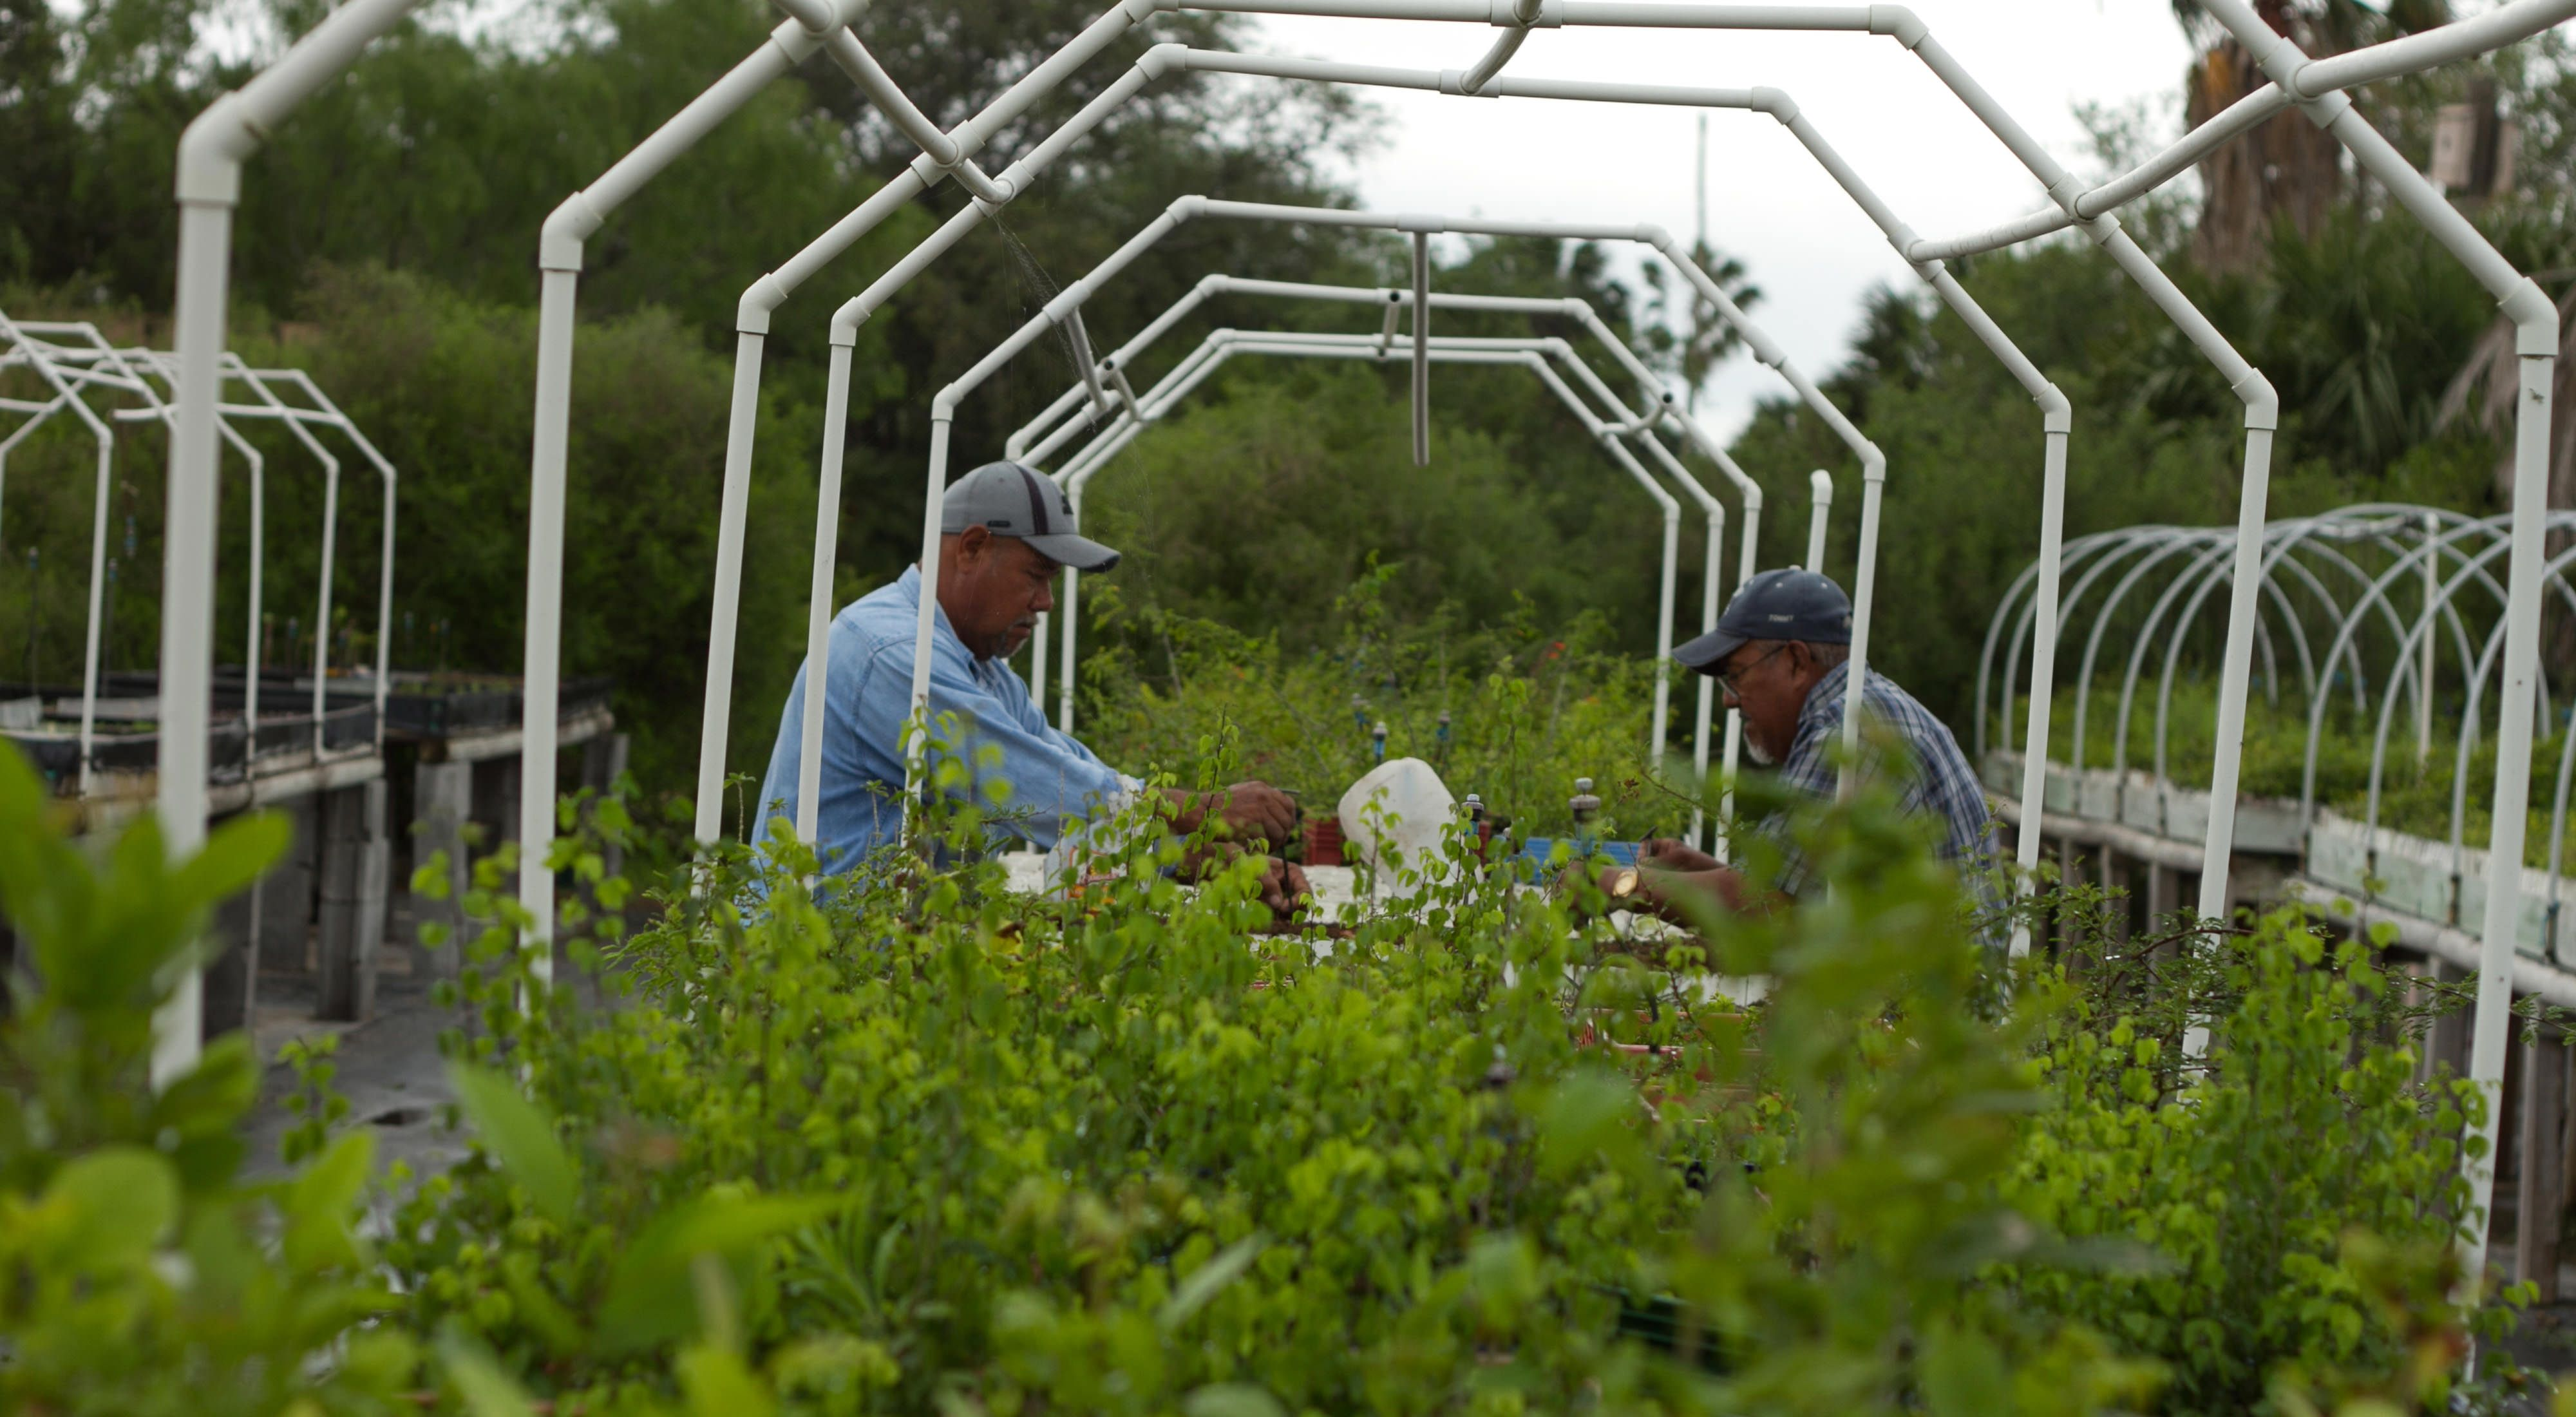 Southmost agricultural work_600x400